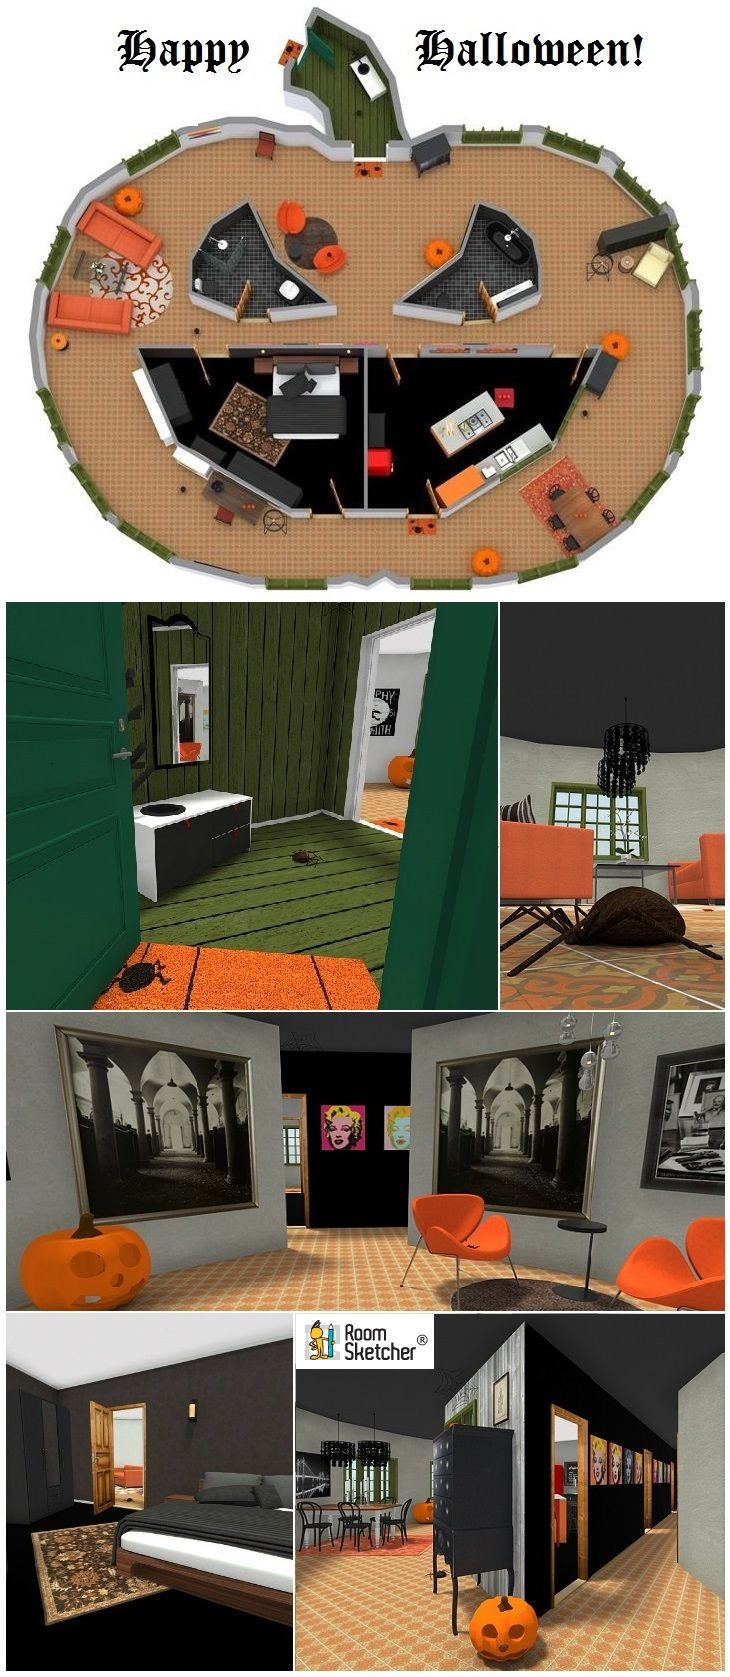 What would it be like to live in a Pumpkin? Find out! Tour our Halloween Pumpkin House in Live 3D - If YOU Dare! Muh-HA-HA-HA… http://www.roomsketcher.com/blog/halloween-pumpkin-house/ (Rated G: Great for all ages!)  #halloween #jackolantern #pumpkin #homedesign #halloweendecoration